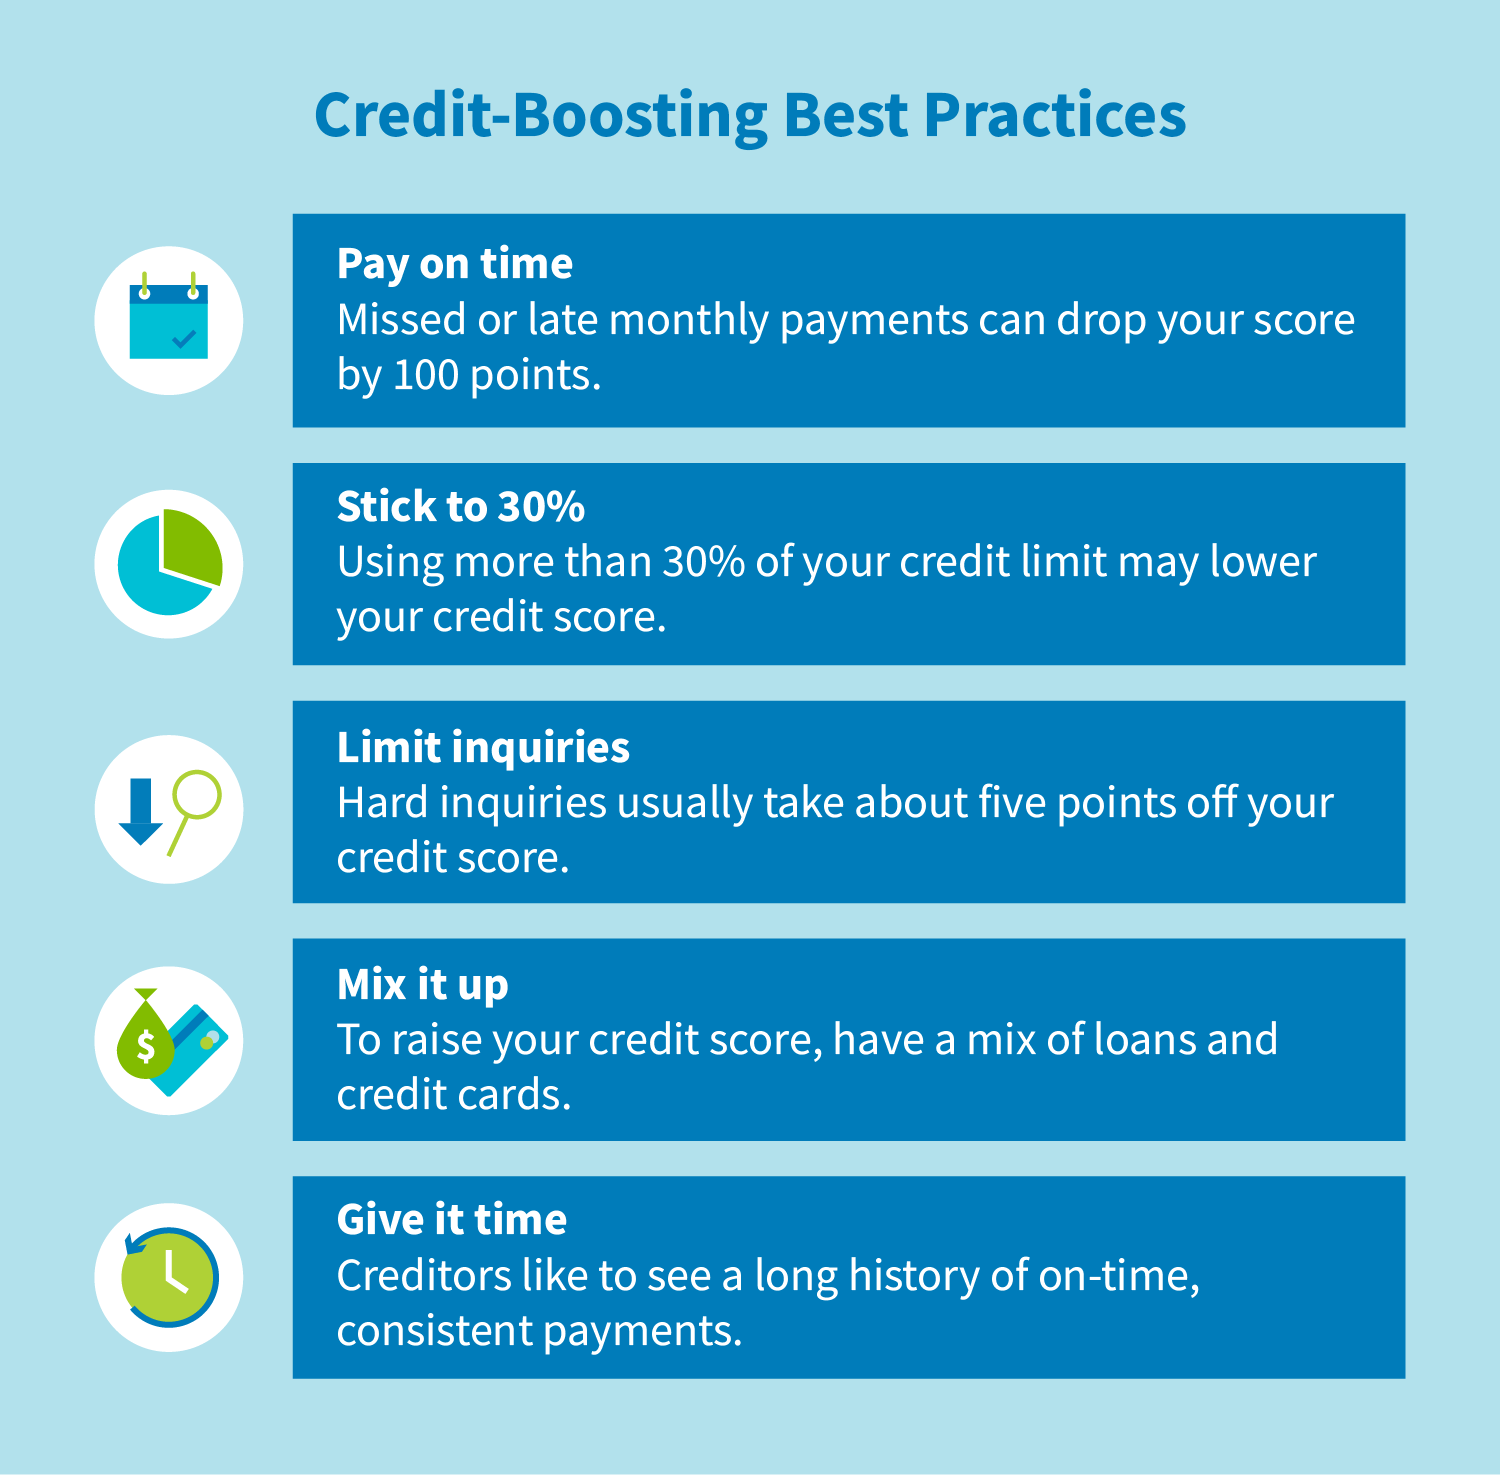 Credit-boosting best practices: Pay on time, stick to 30%, limit inquiries, mix it up, give it time.